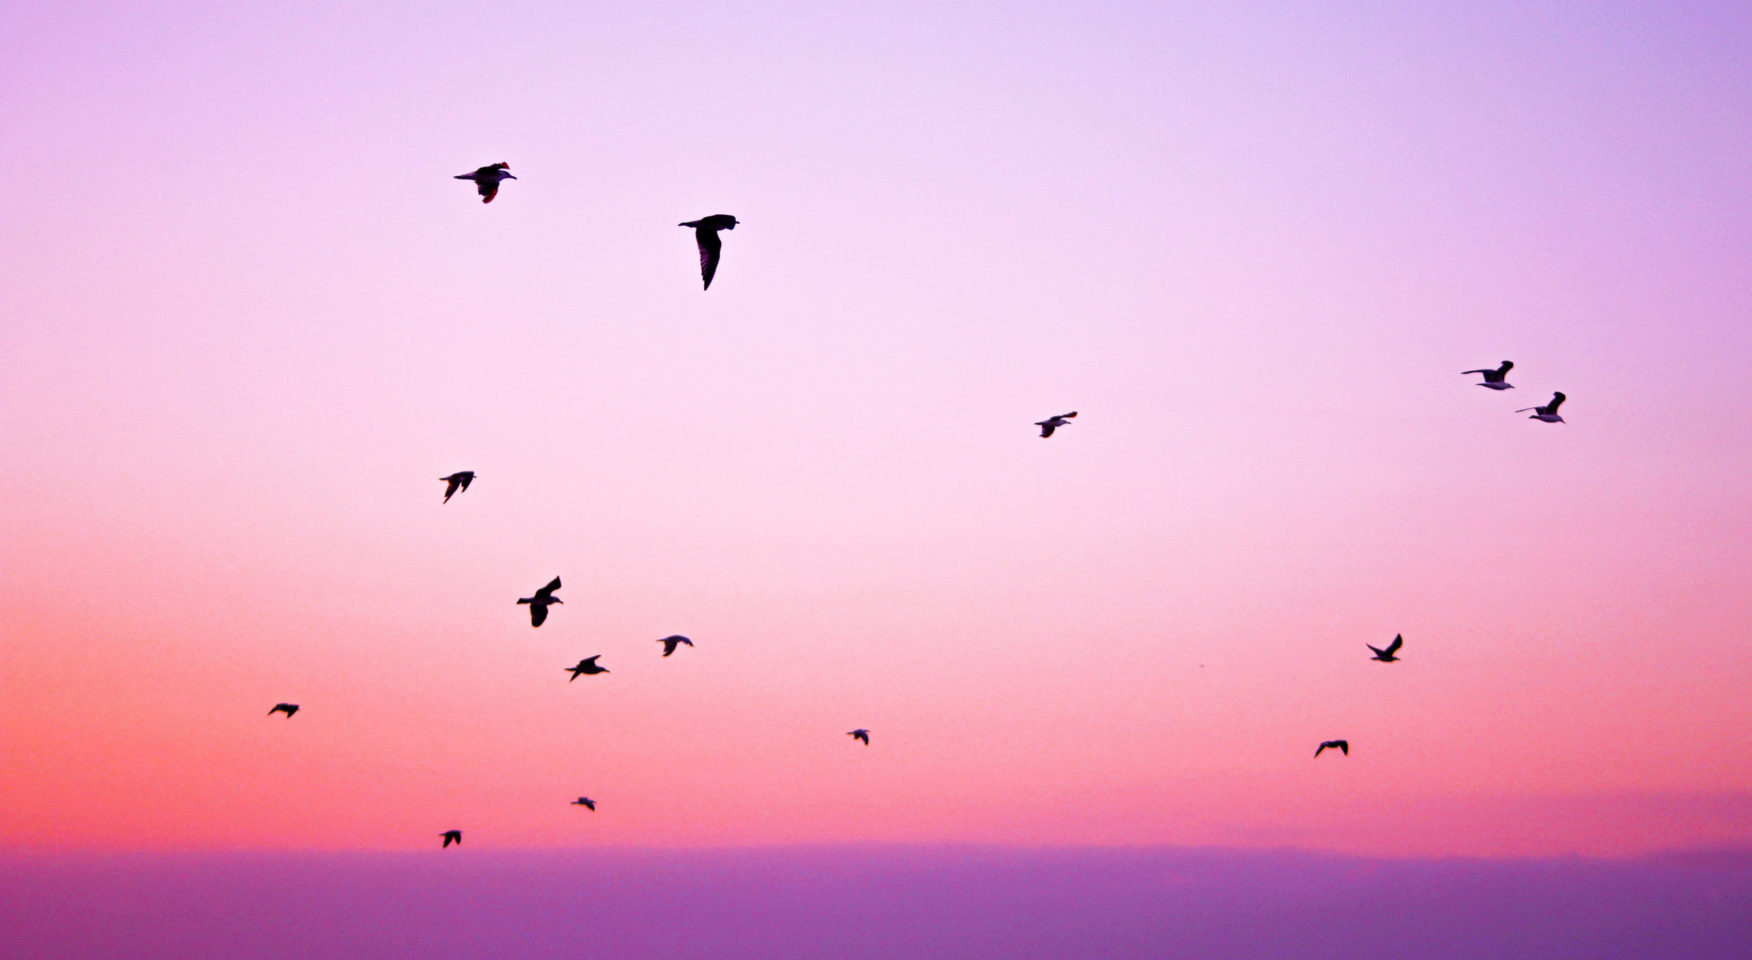 purple pink sky with flying birds silhouette